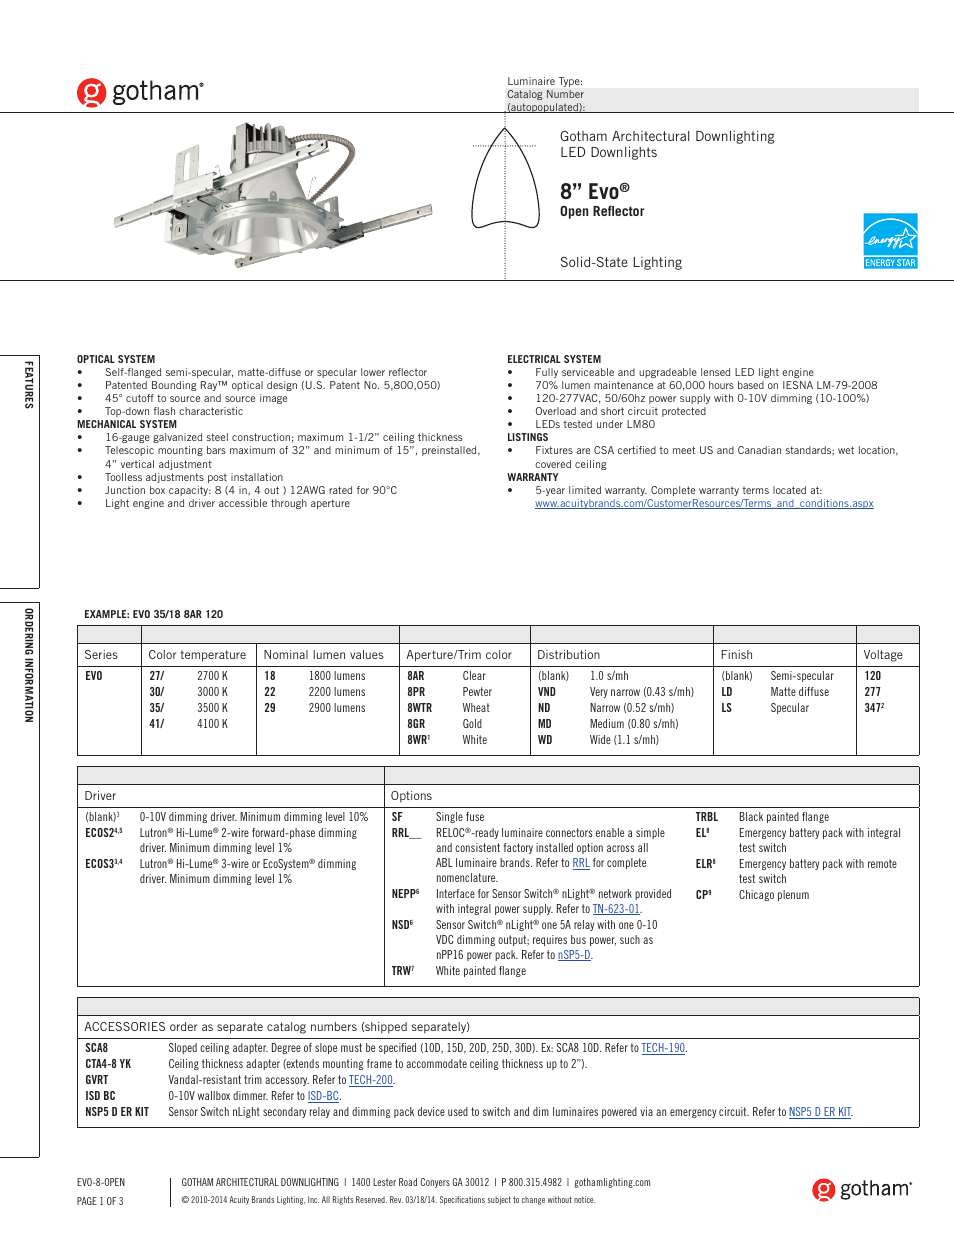 Gotham 8 Evo Open Reflector Specsheet User Manual 3 Pages 0 10v Dimming Wiring Diagram Led Downlight